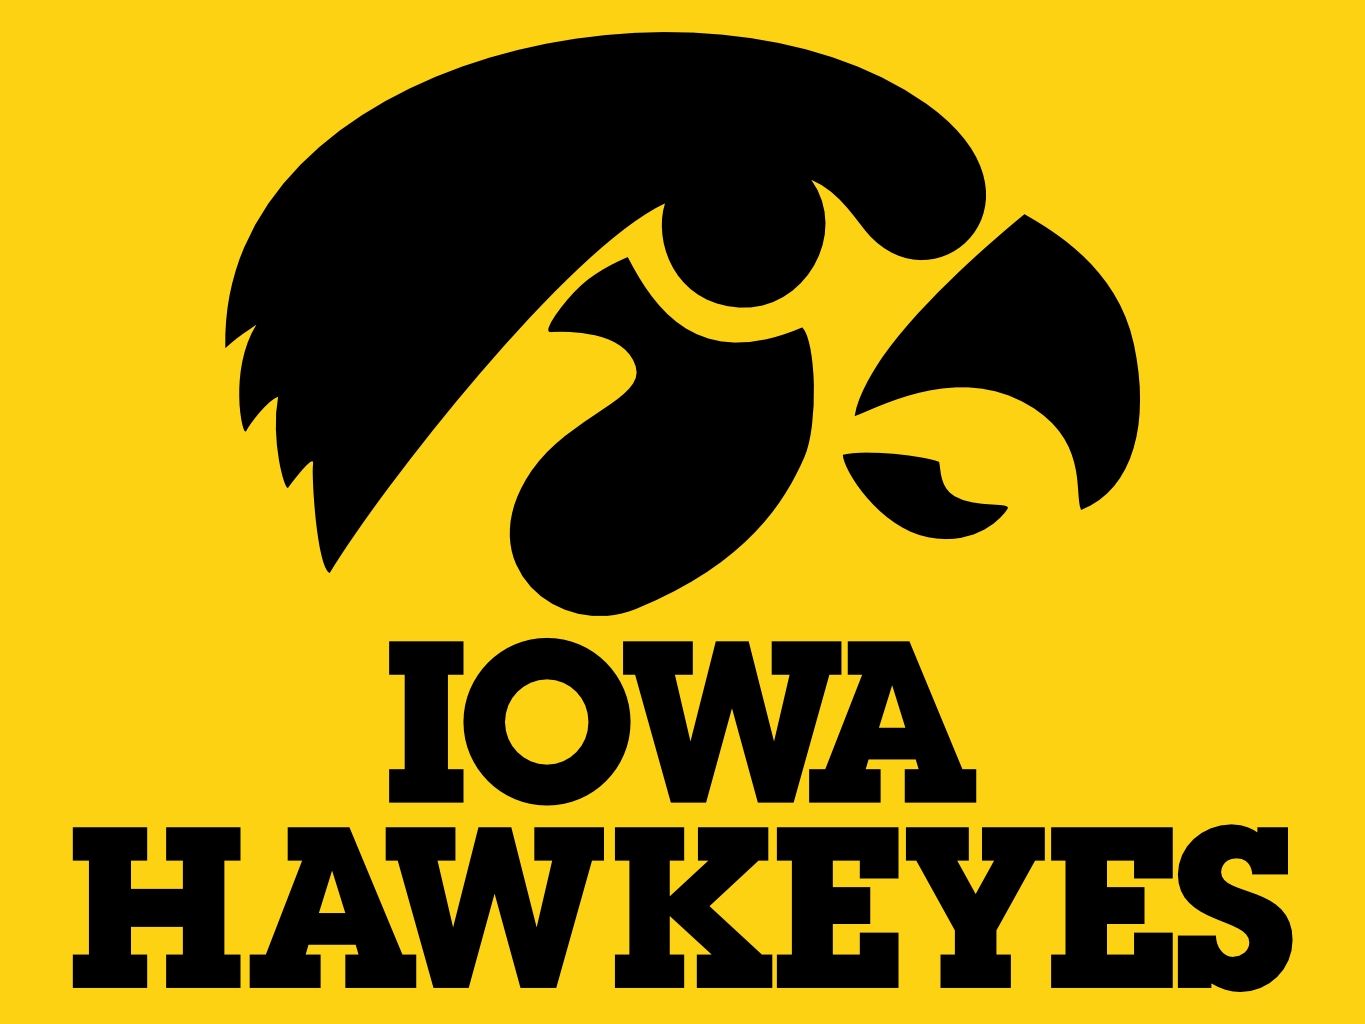 iowa hawkeyes wallpaper